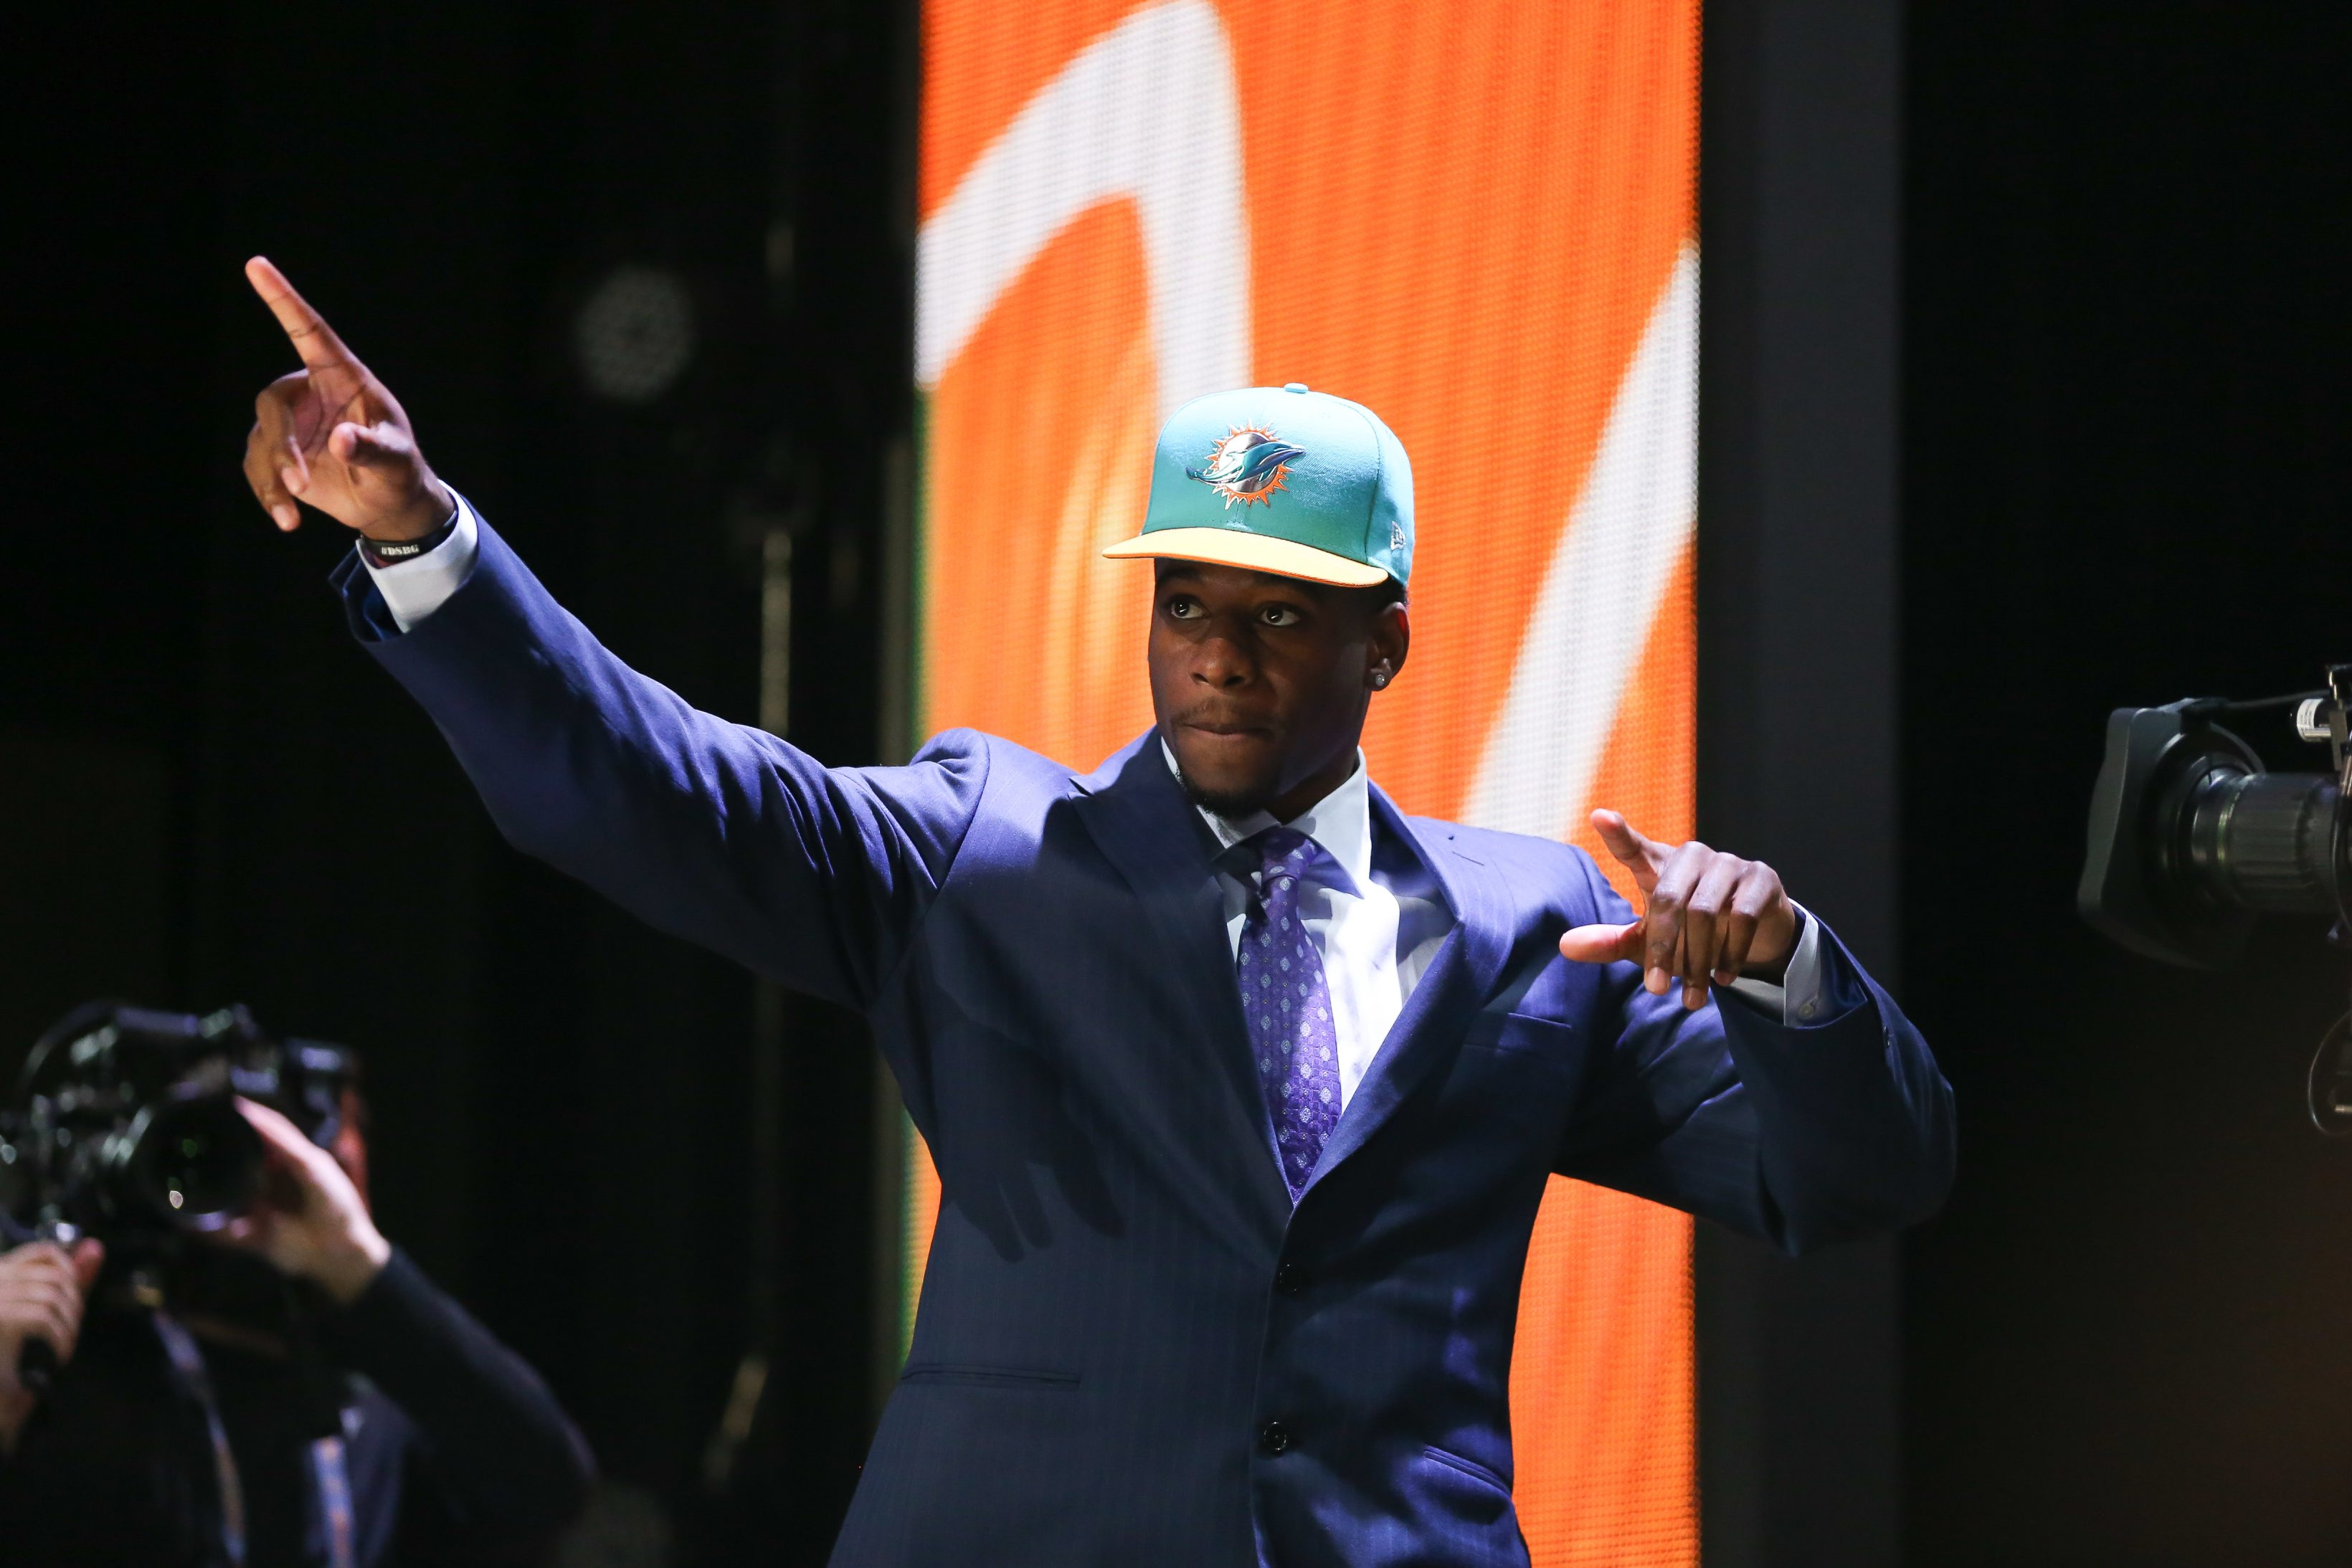 CHICAGO, IL - APRIL 30:  DeVante Parker of the Louisville Cardinals walks on stage after being picked #14 overall by the Miami Dolphins during the first round of the 2015 NFL Draft at the Auditorium Theatre of Roosevelt University on April 30, 2015 in Chicago, Illinois.  (Photo by Jonathan Daniel/Getty Images)